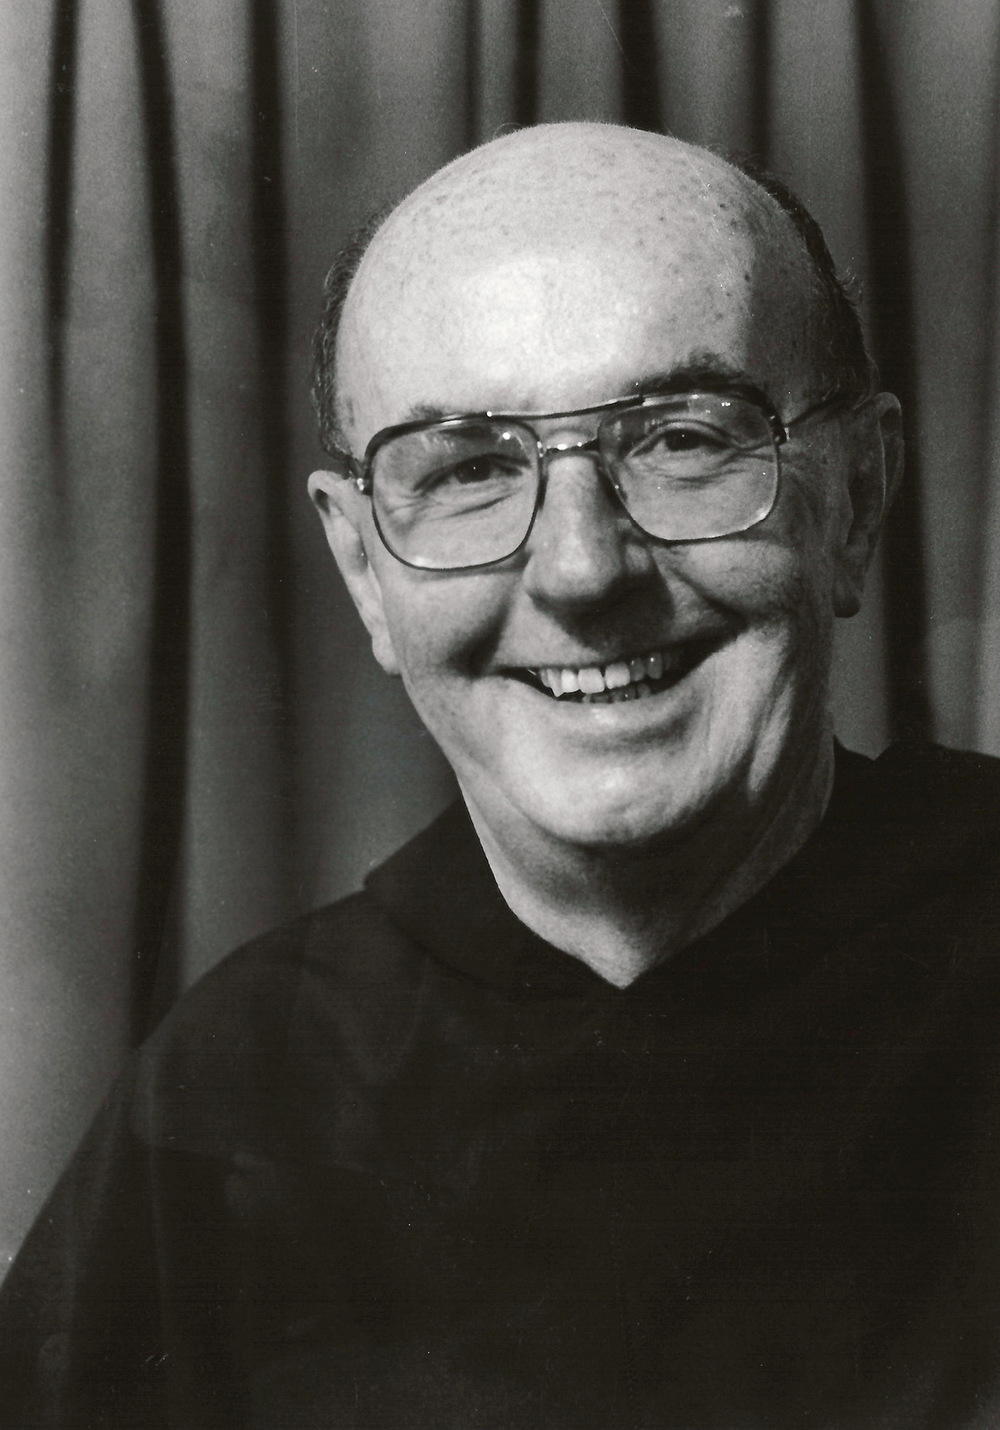 Fr. Ray Ryan, O.S.A., served as the Prior Provincial for the Midwest Augustinians for three four-year terms